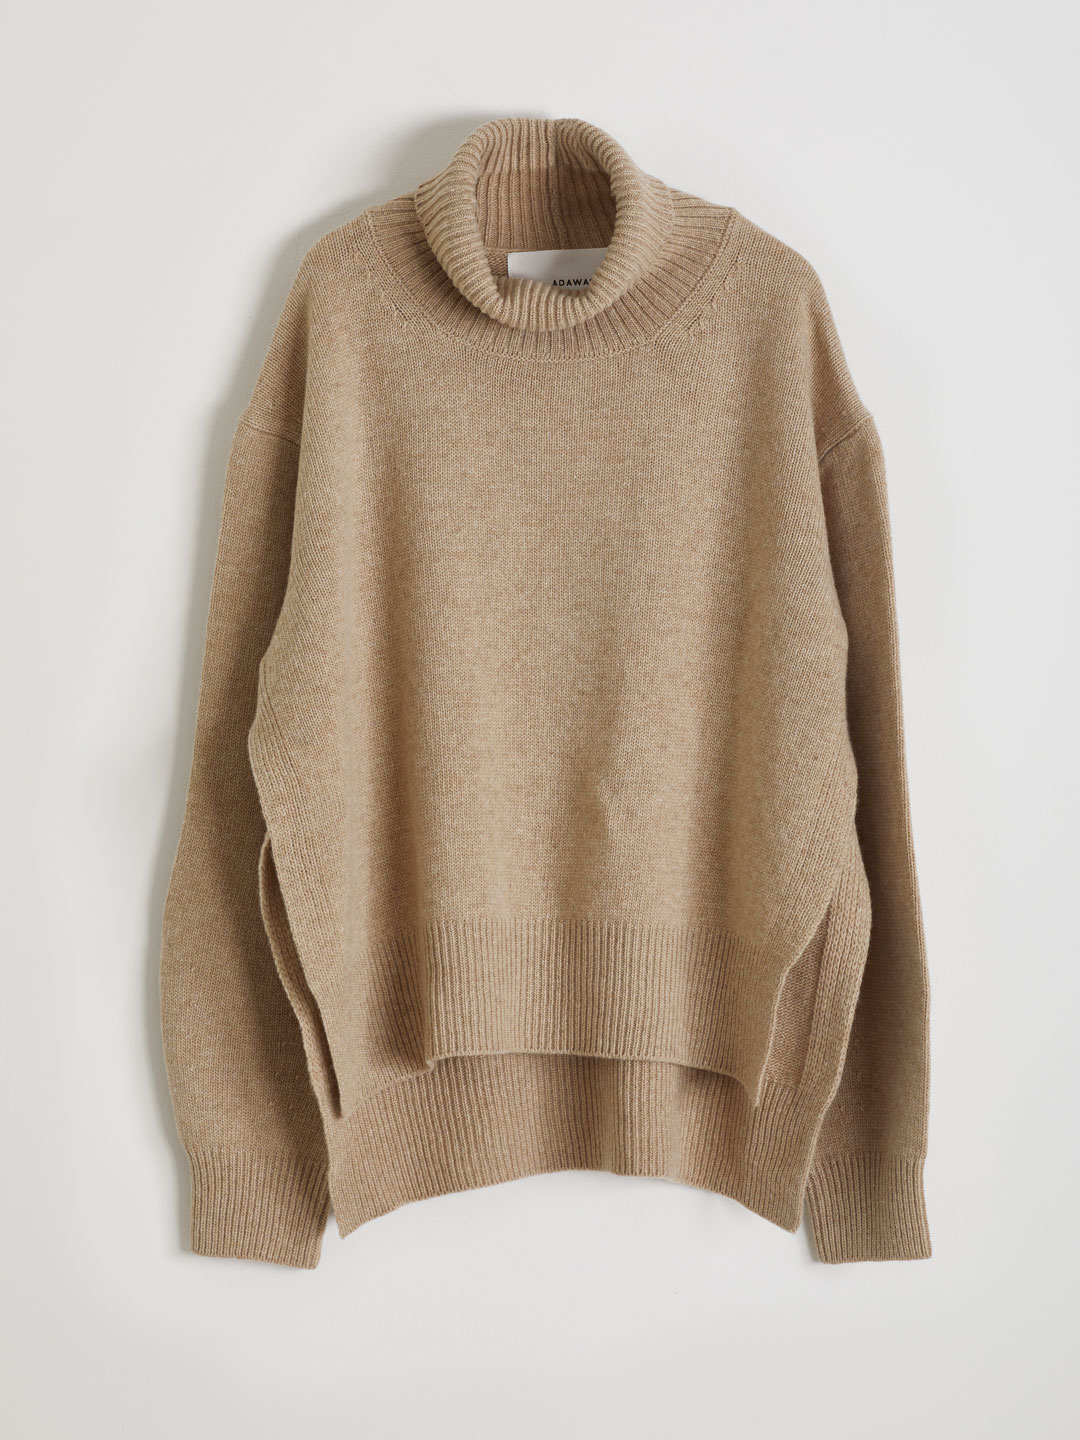 Ultra Fine Wool Hi Neck Knit  - Brown